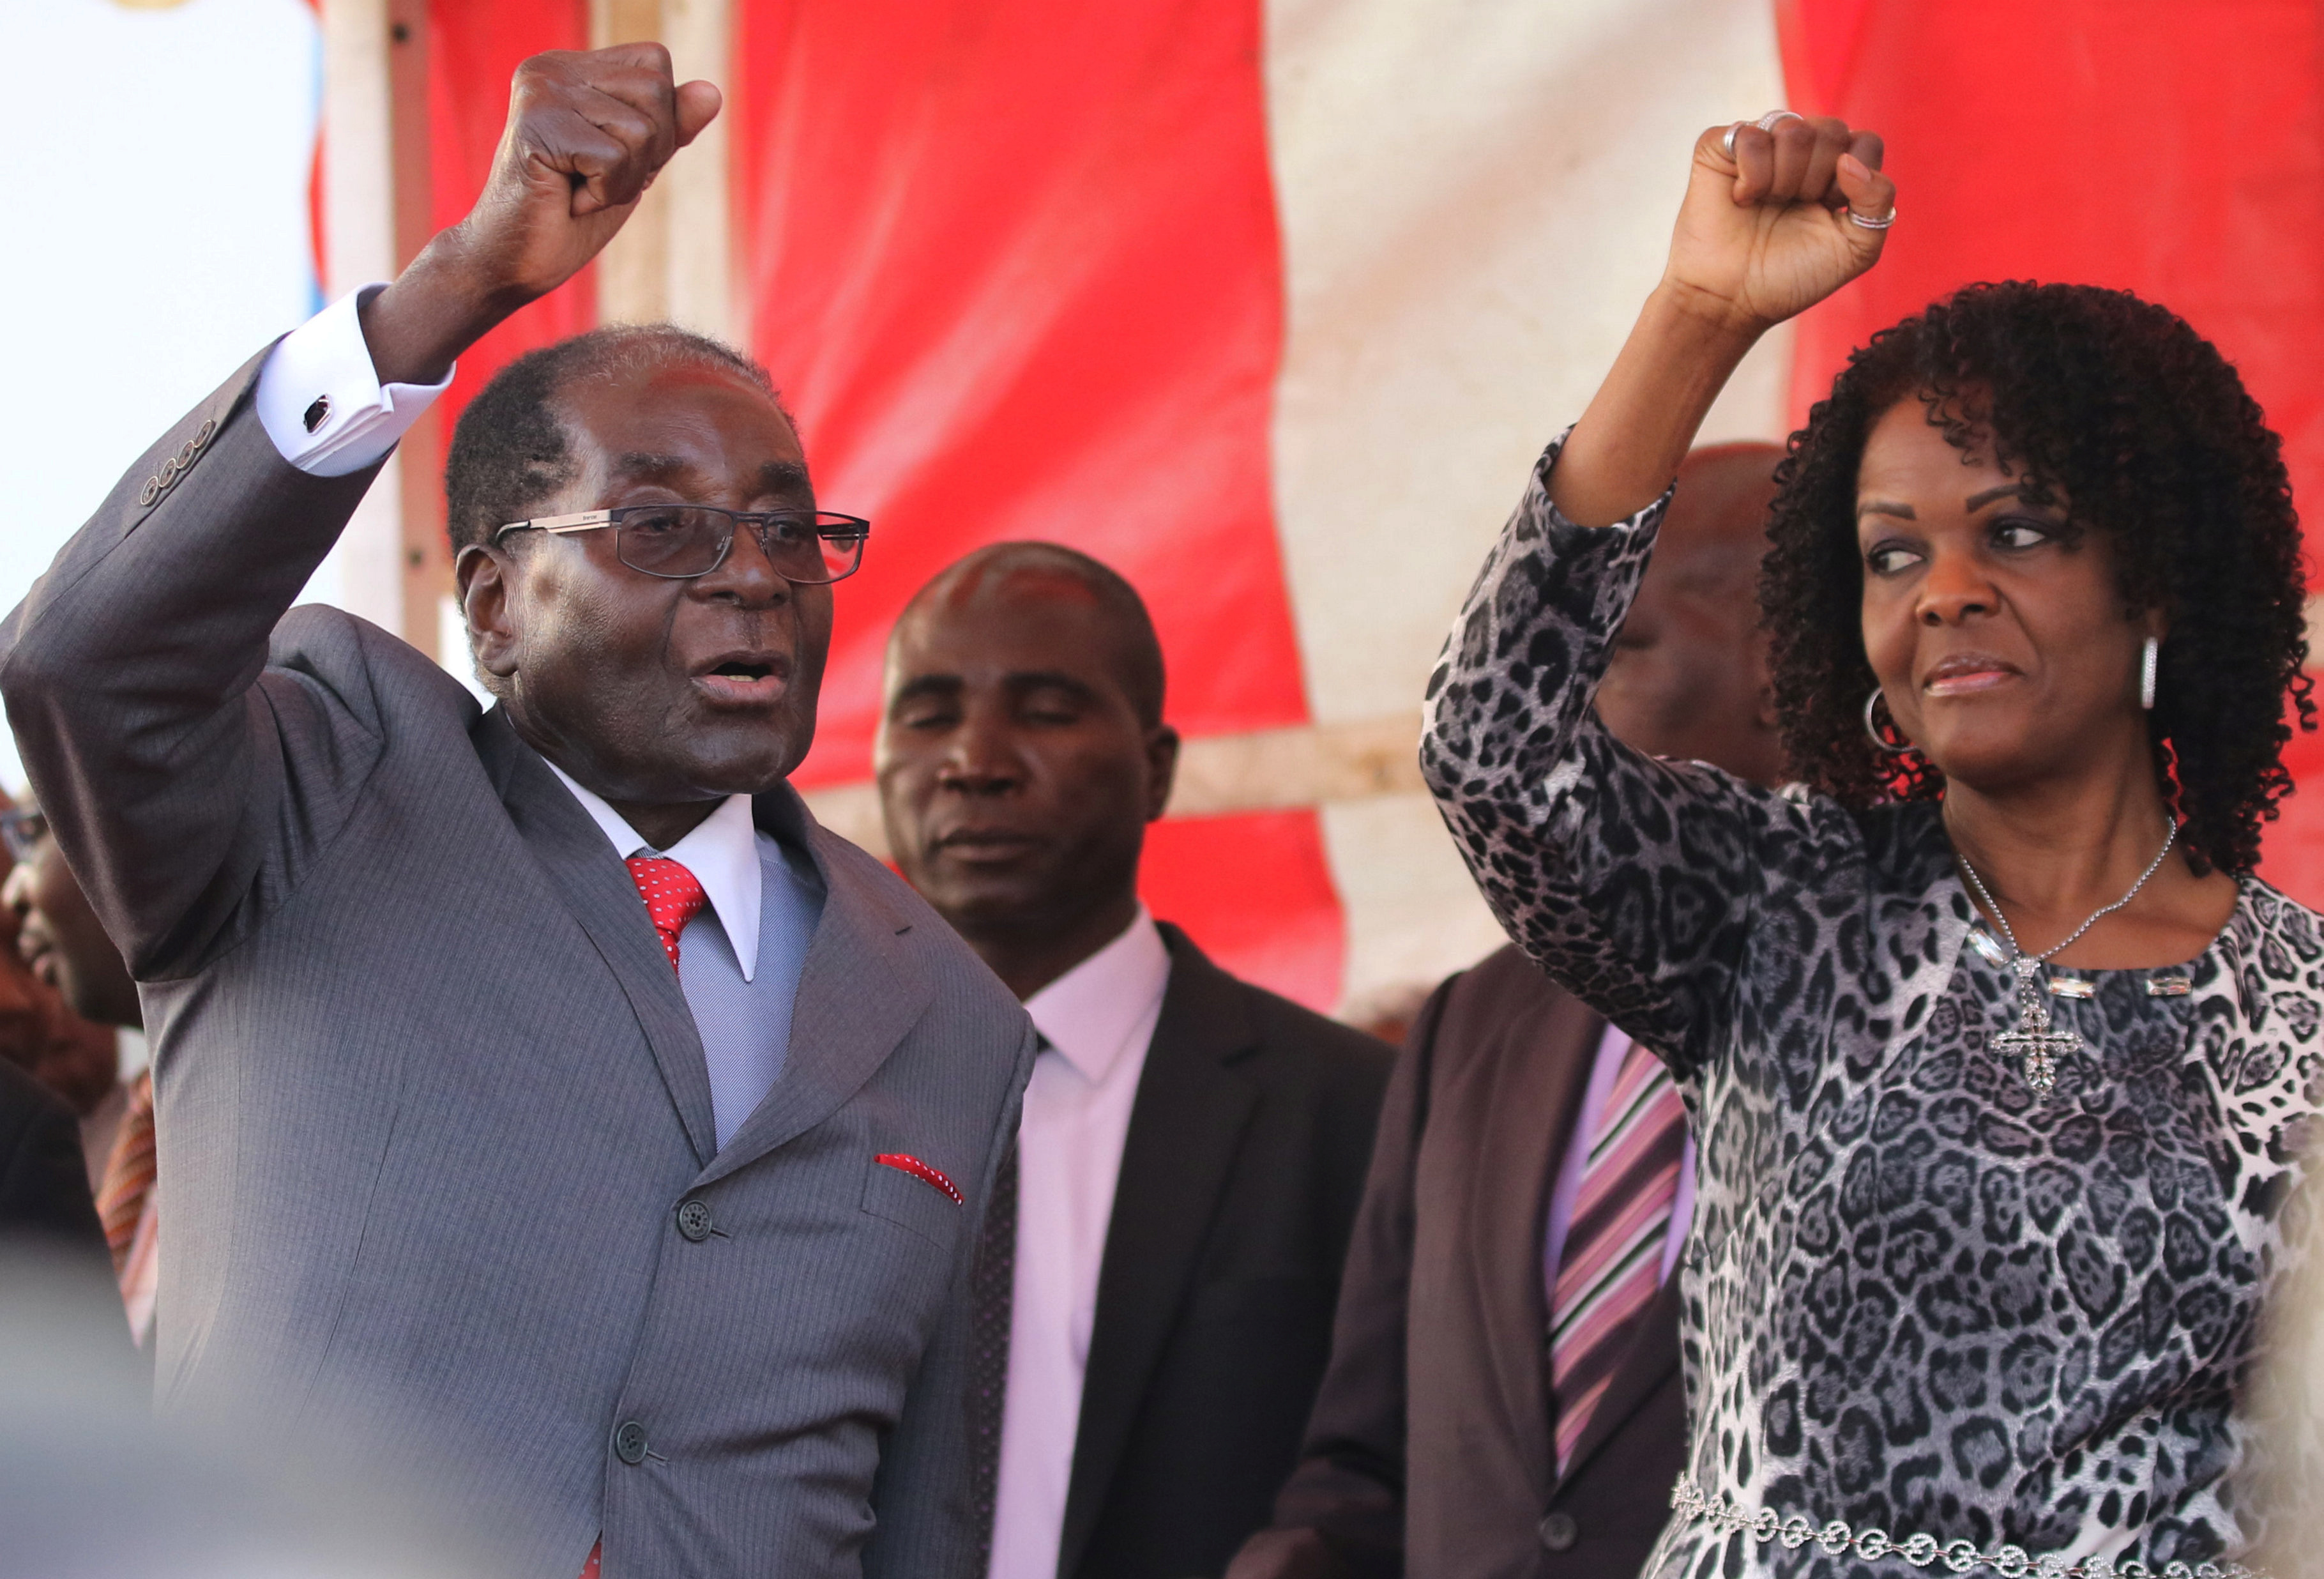 Zimbabwe's first lady has surrendered to police over an alleged hotel assault